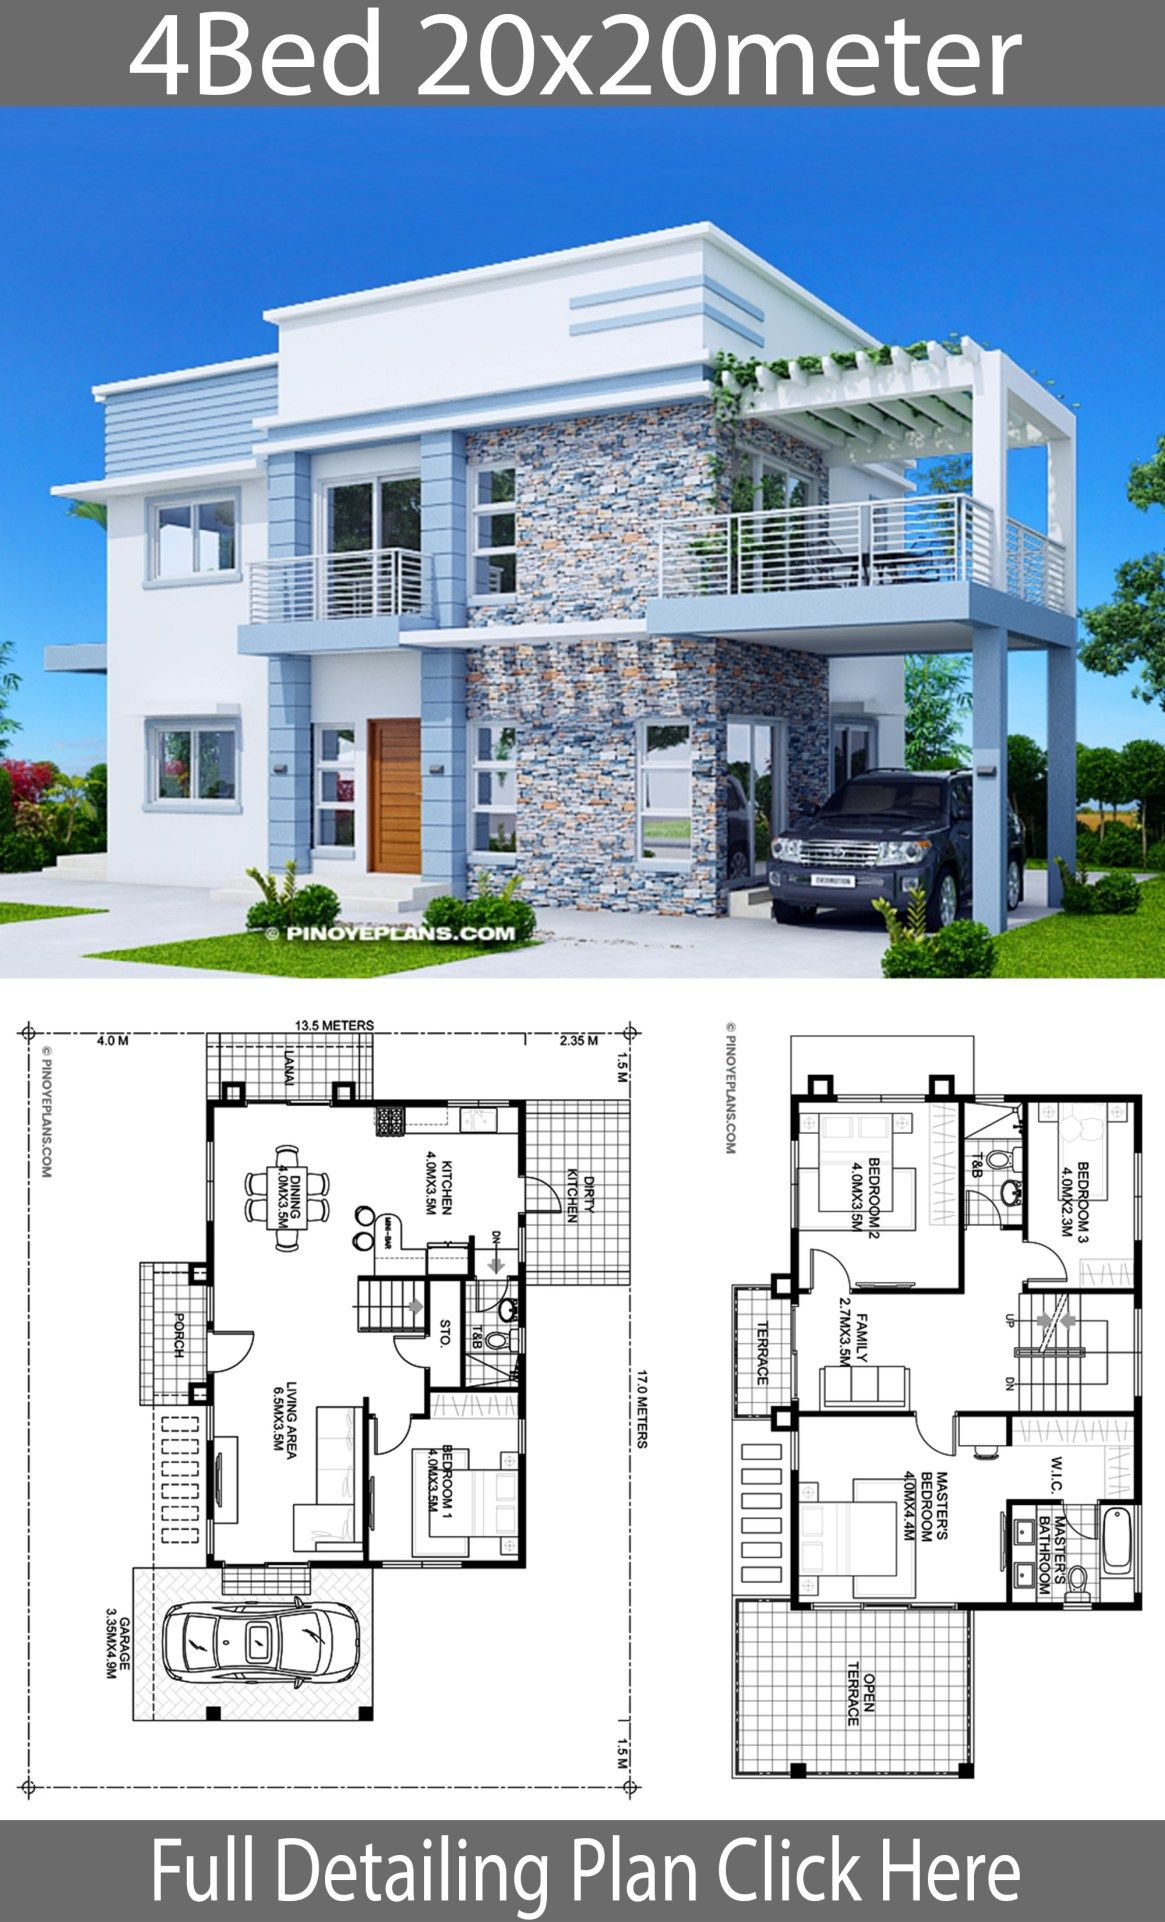 Home design plan 20x20m with 4 Bedrooms is part of Home design plan - Home design plan 20x20m with 4 Bedrooms